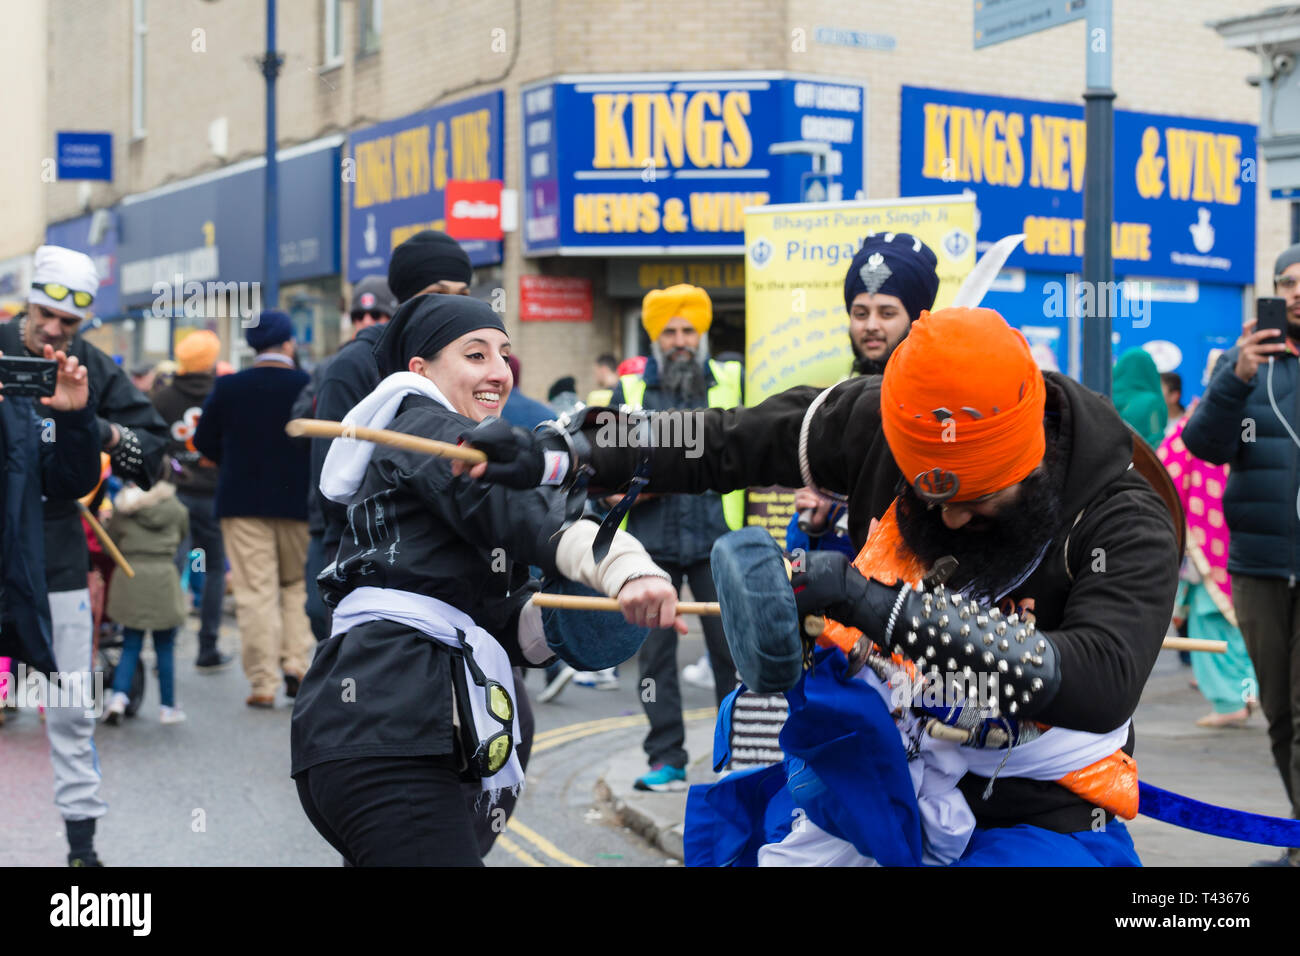 Gravesend, Kent, UK. Vaisakhi Festival 13th April 2019. Gravesend comes alive with colour as the Sikh community celebrate Vaisakhi. - Stock Image